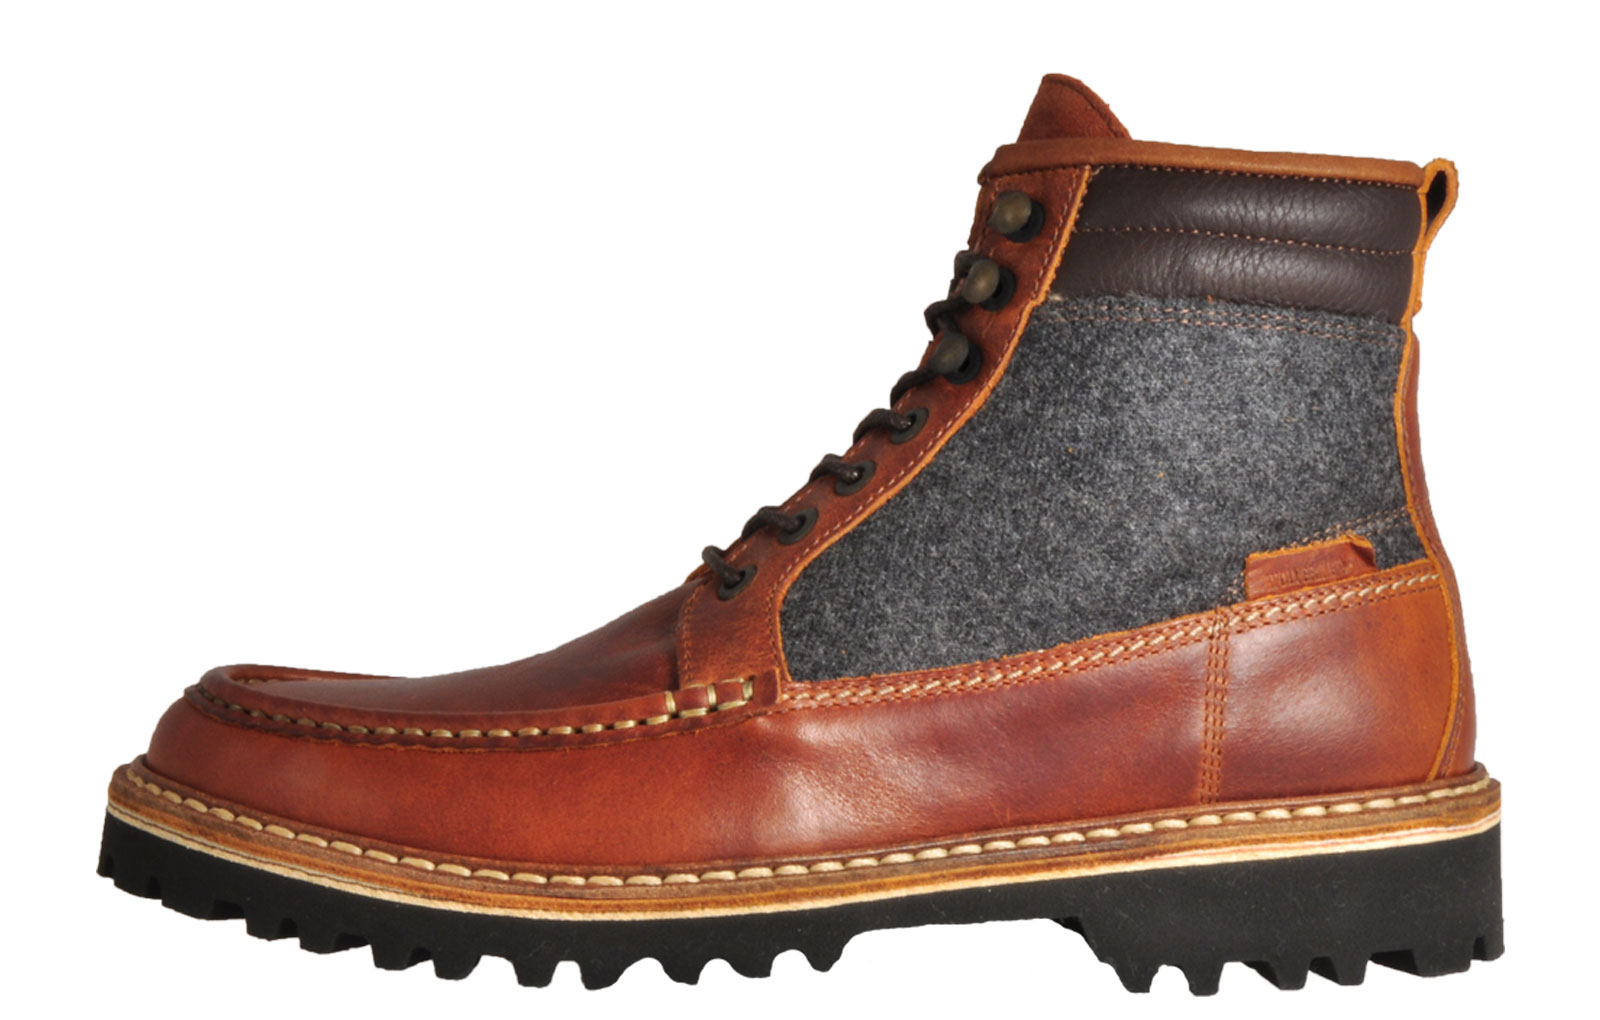 6daaeeb0902 Details about Wolverine 1883 Ricardo Men's Leather Classic Casual Walking  Hiking Boots Brown